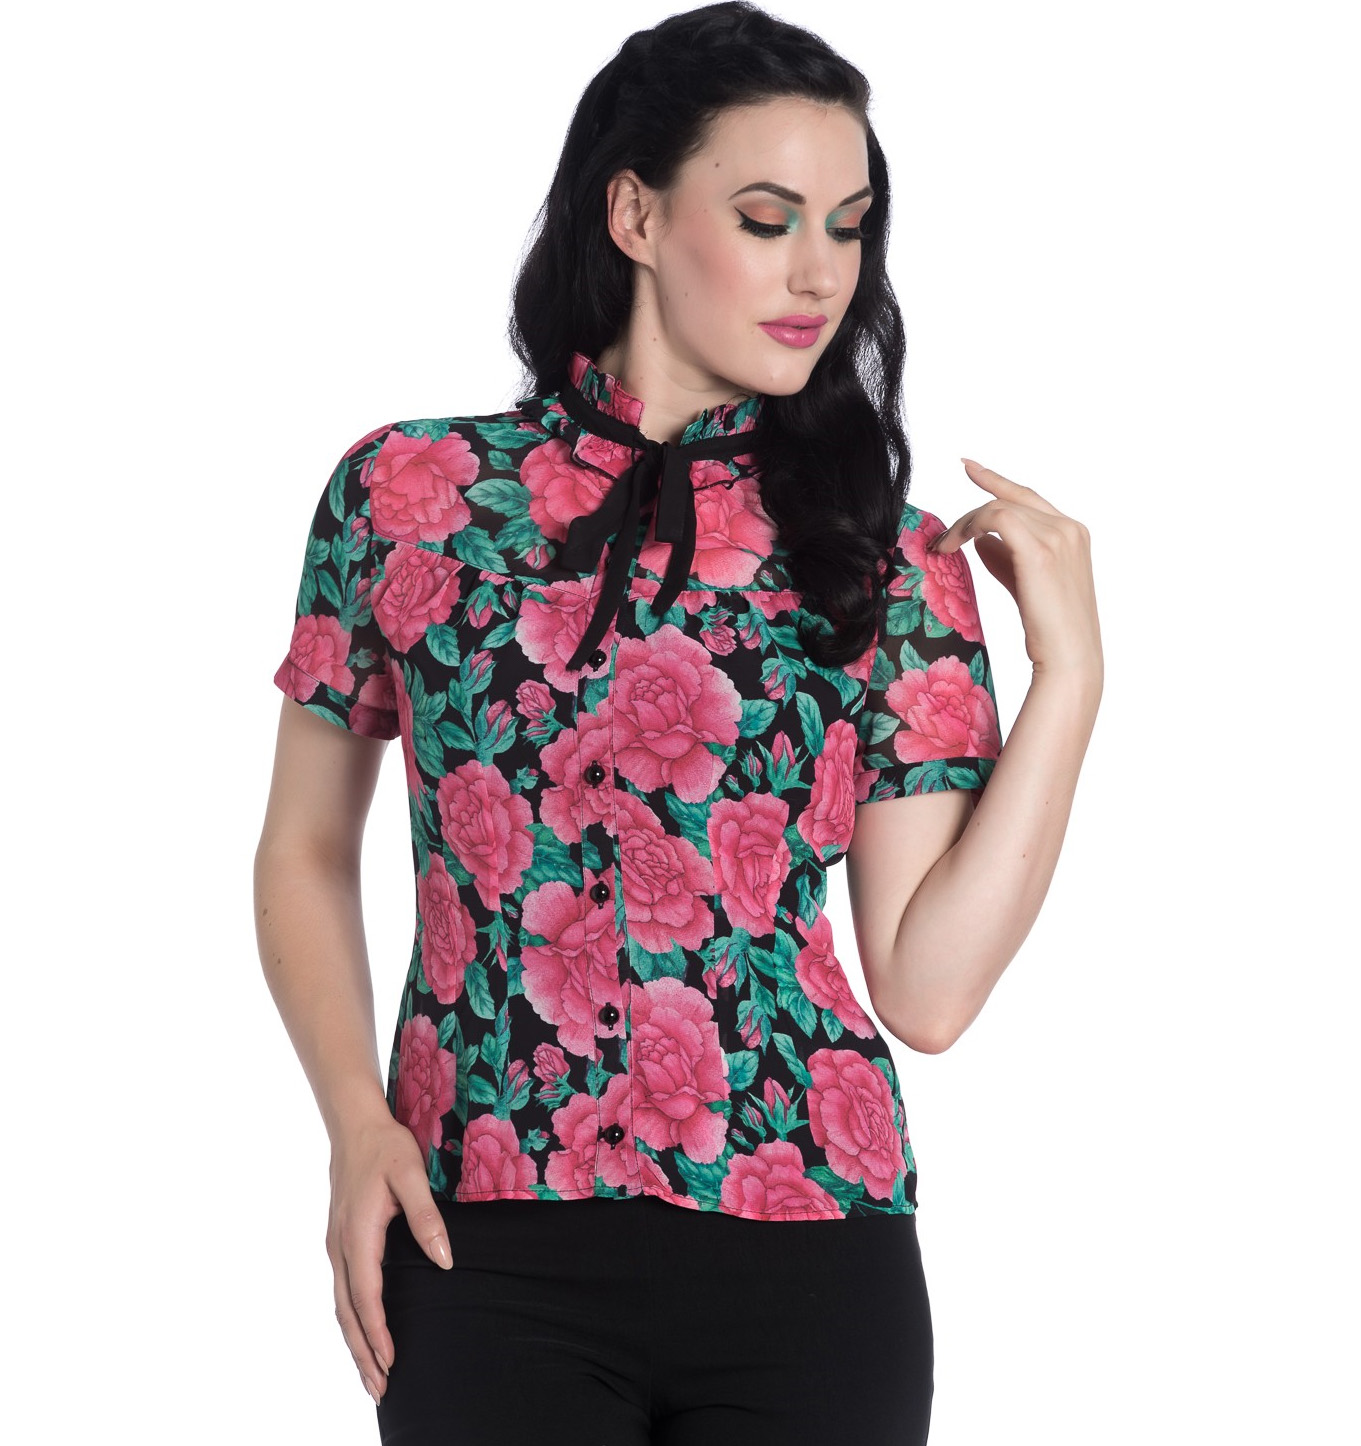 Hell-Bunny-Shirt-Top-Flowers-Roses-EDEN-ROSE-Black-Pink-Blouse-All-Sizes thumbnail 3